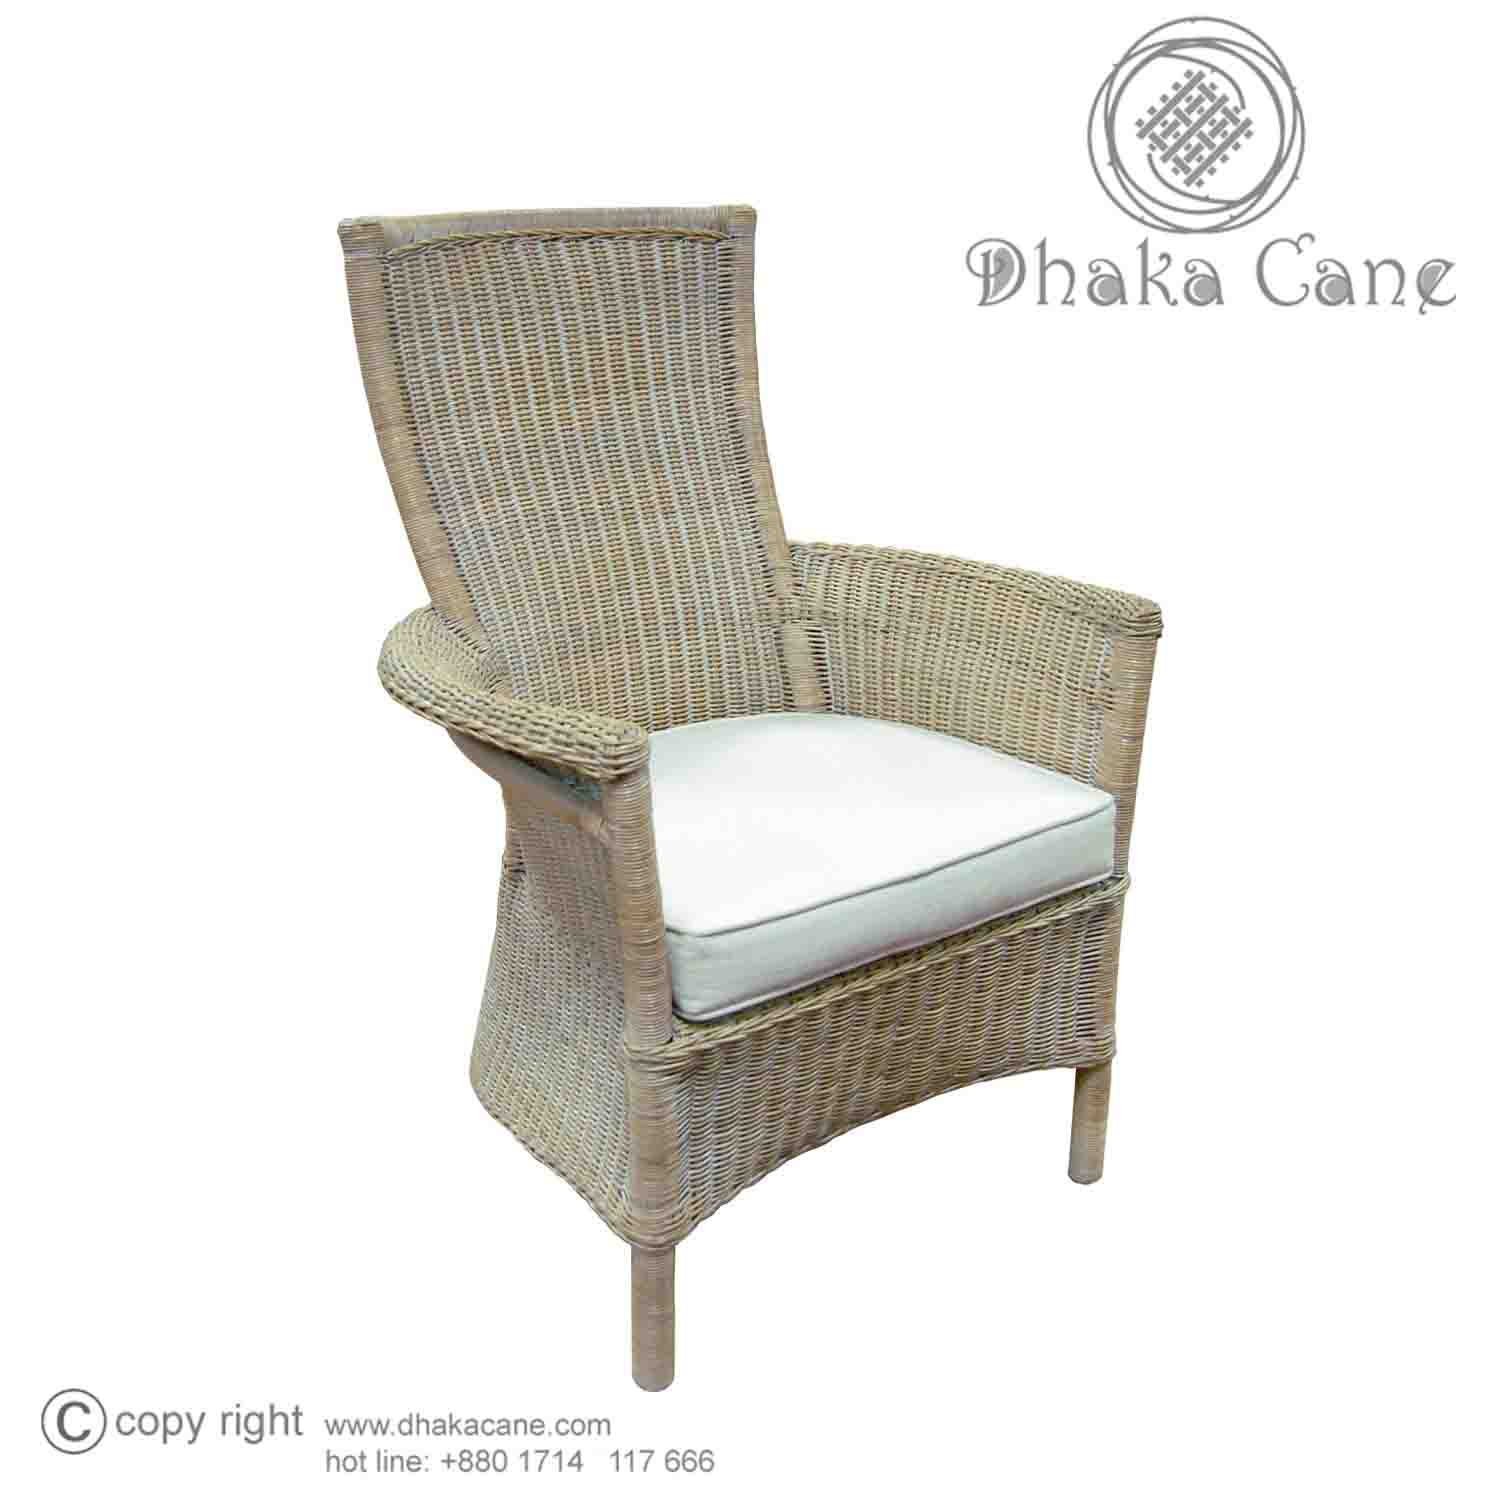 Rattan Chair Dcc 1850